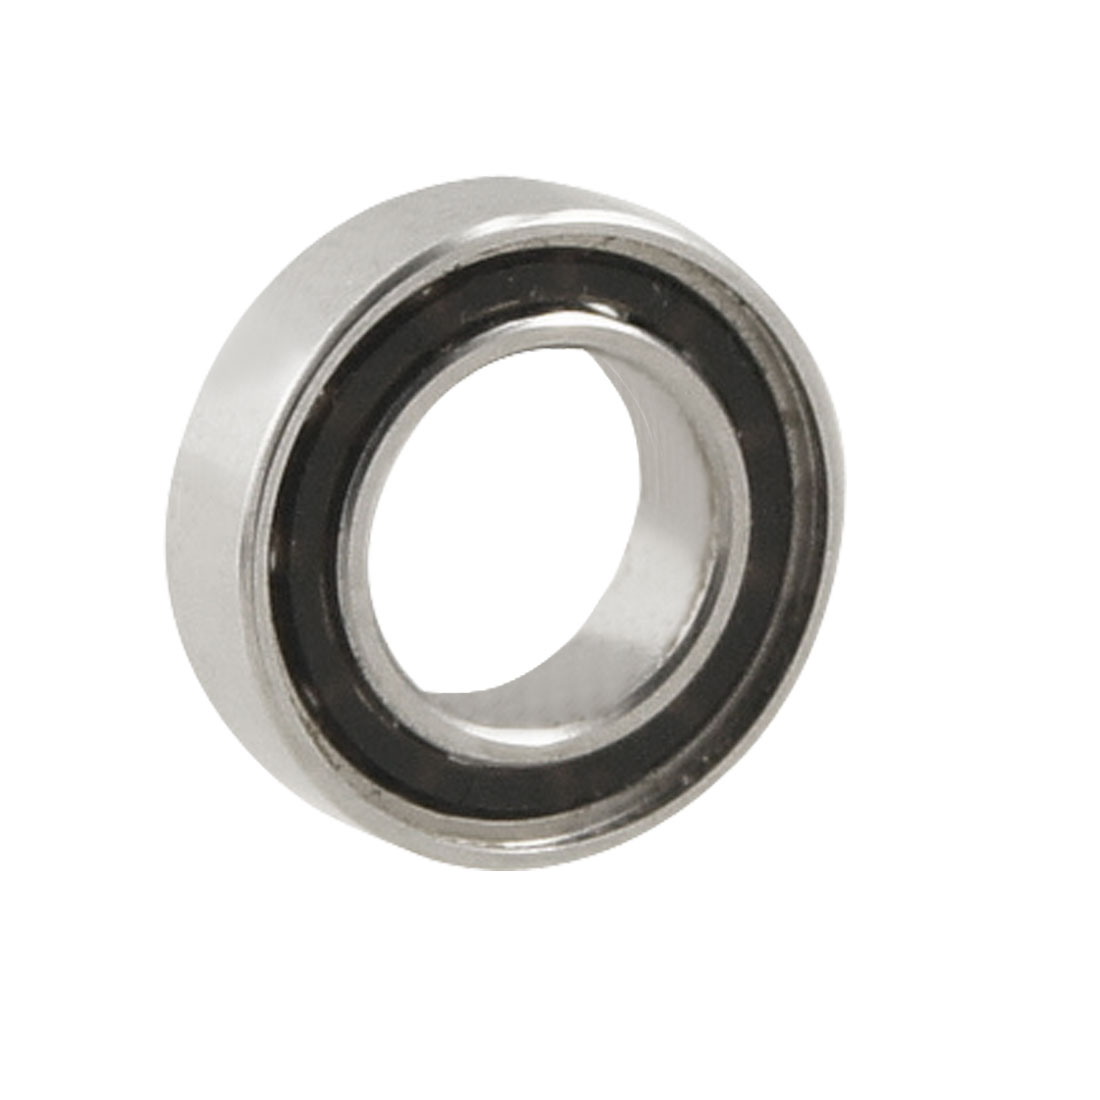 Unique Bargains 7mm x 4mm x 2mm Metal Sealed Deep Groove Roller Bearings